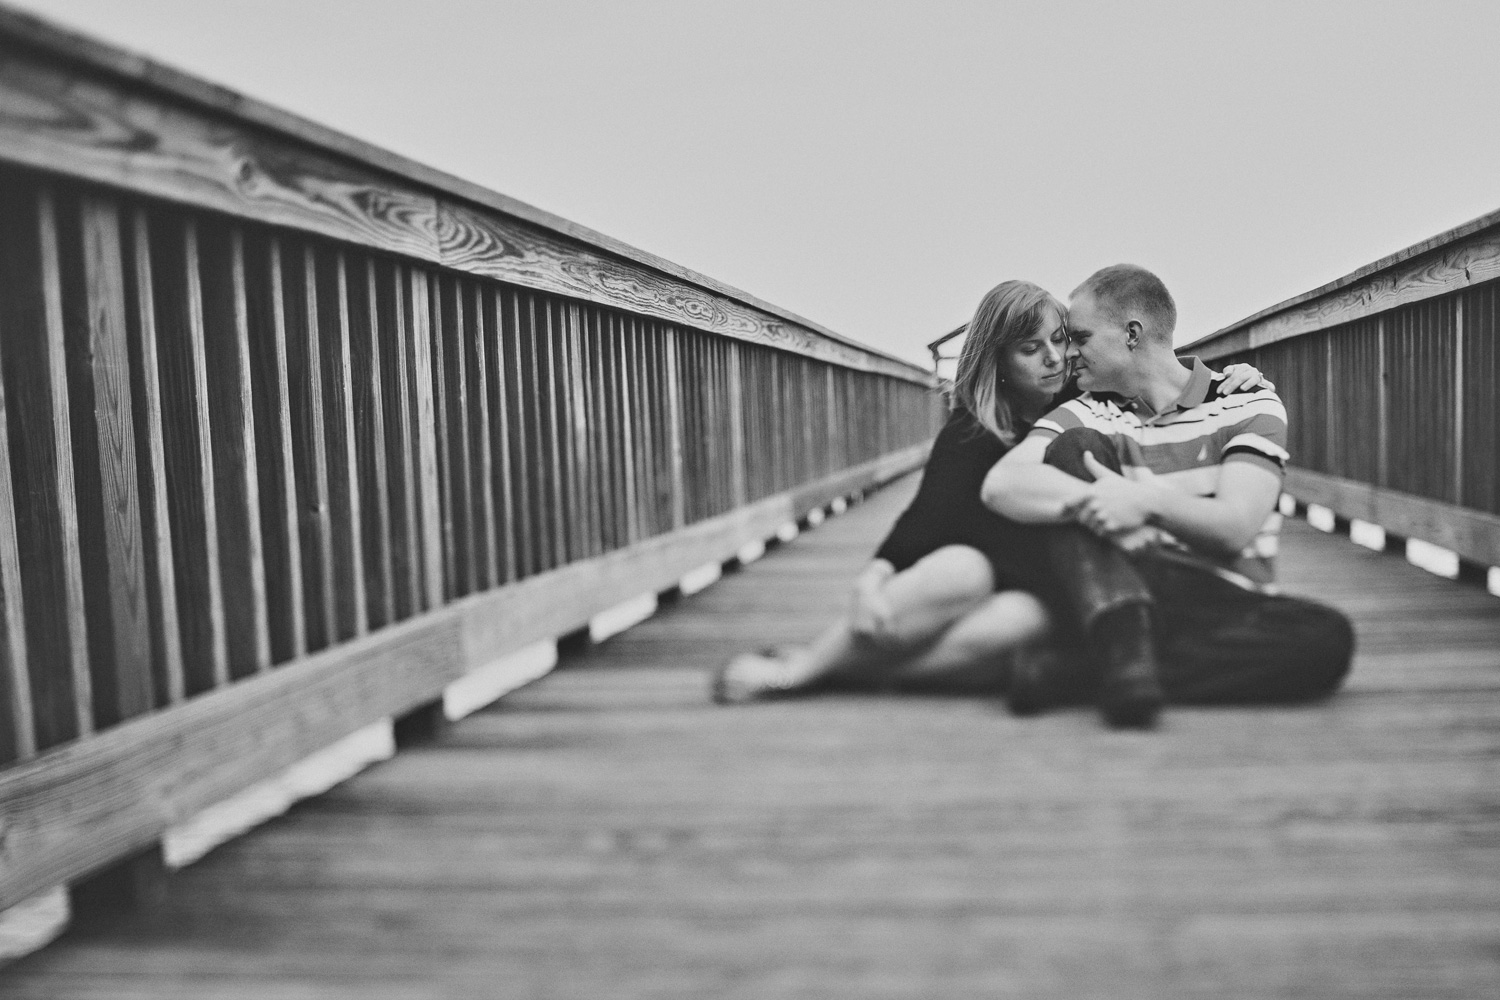 348-leesylvania-state-park-engagement-photography.jpg